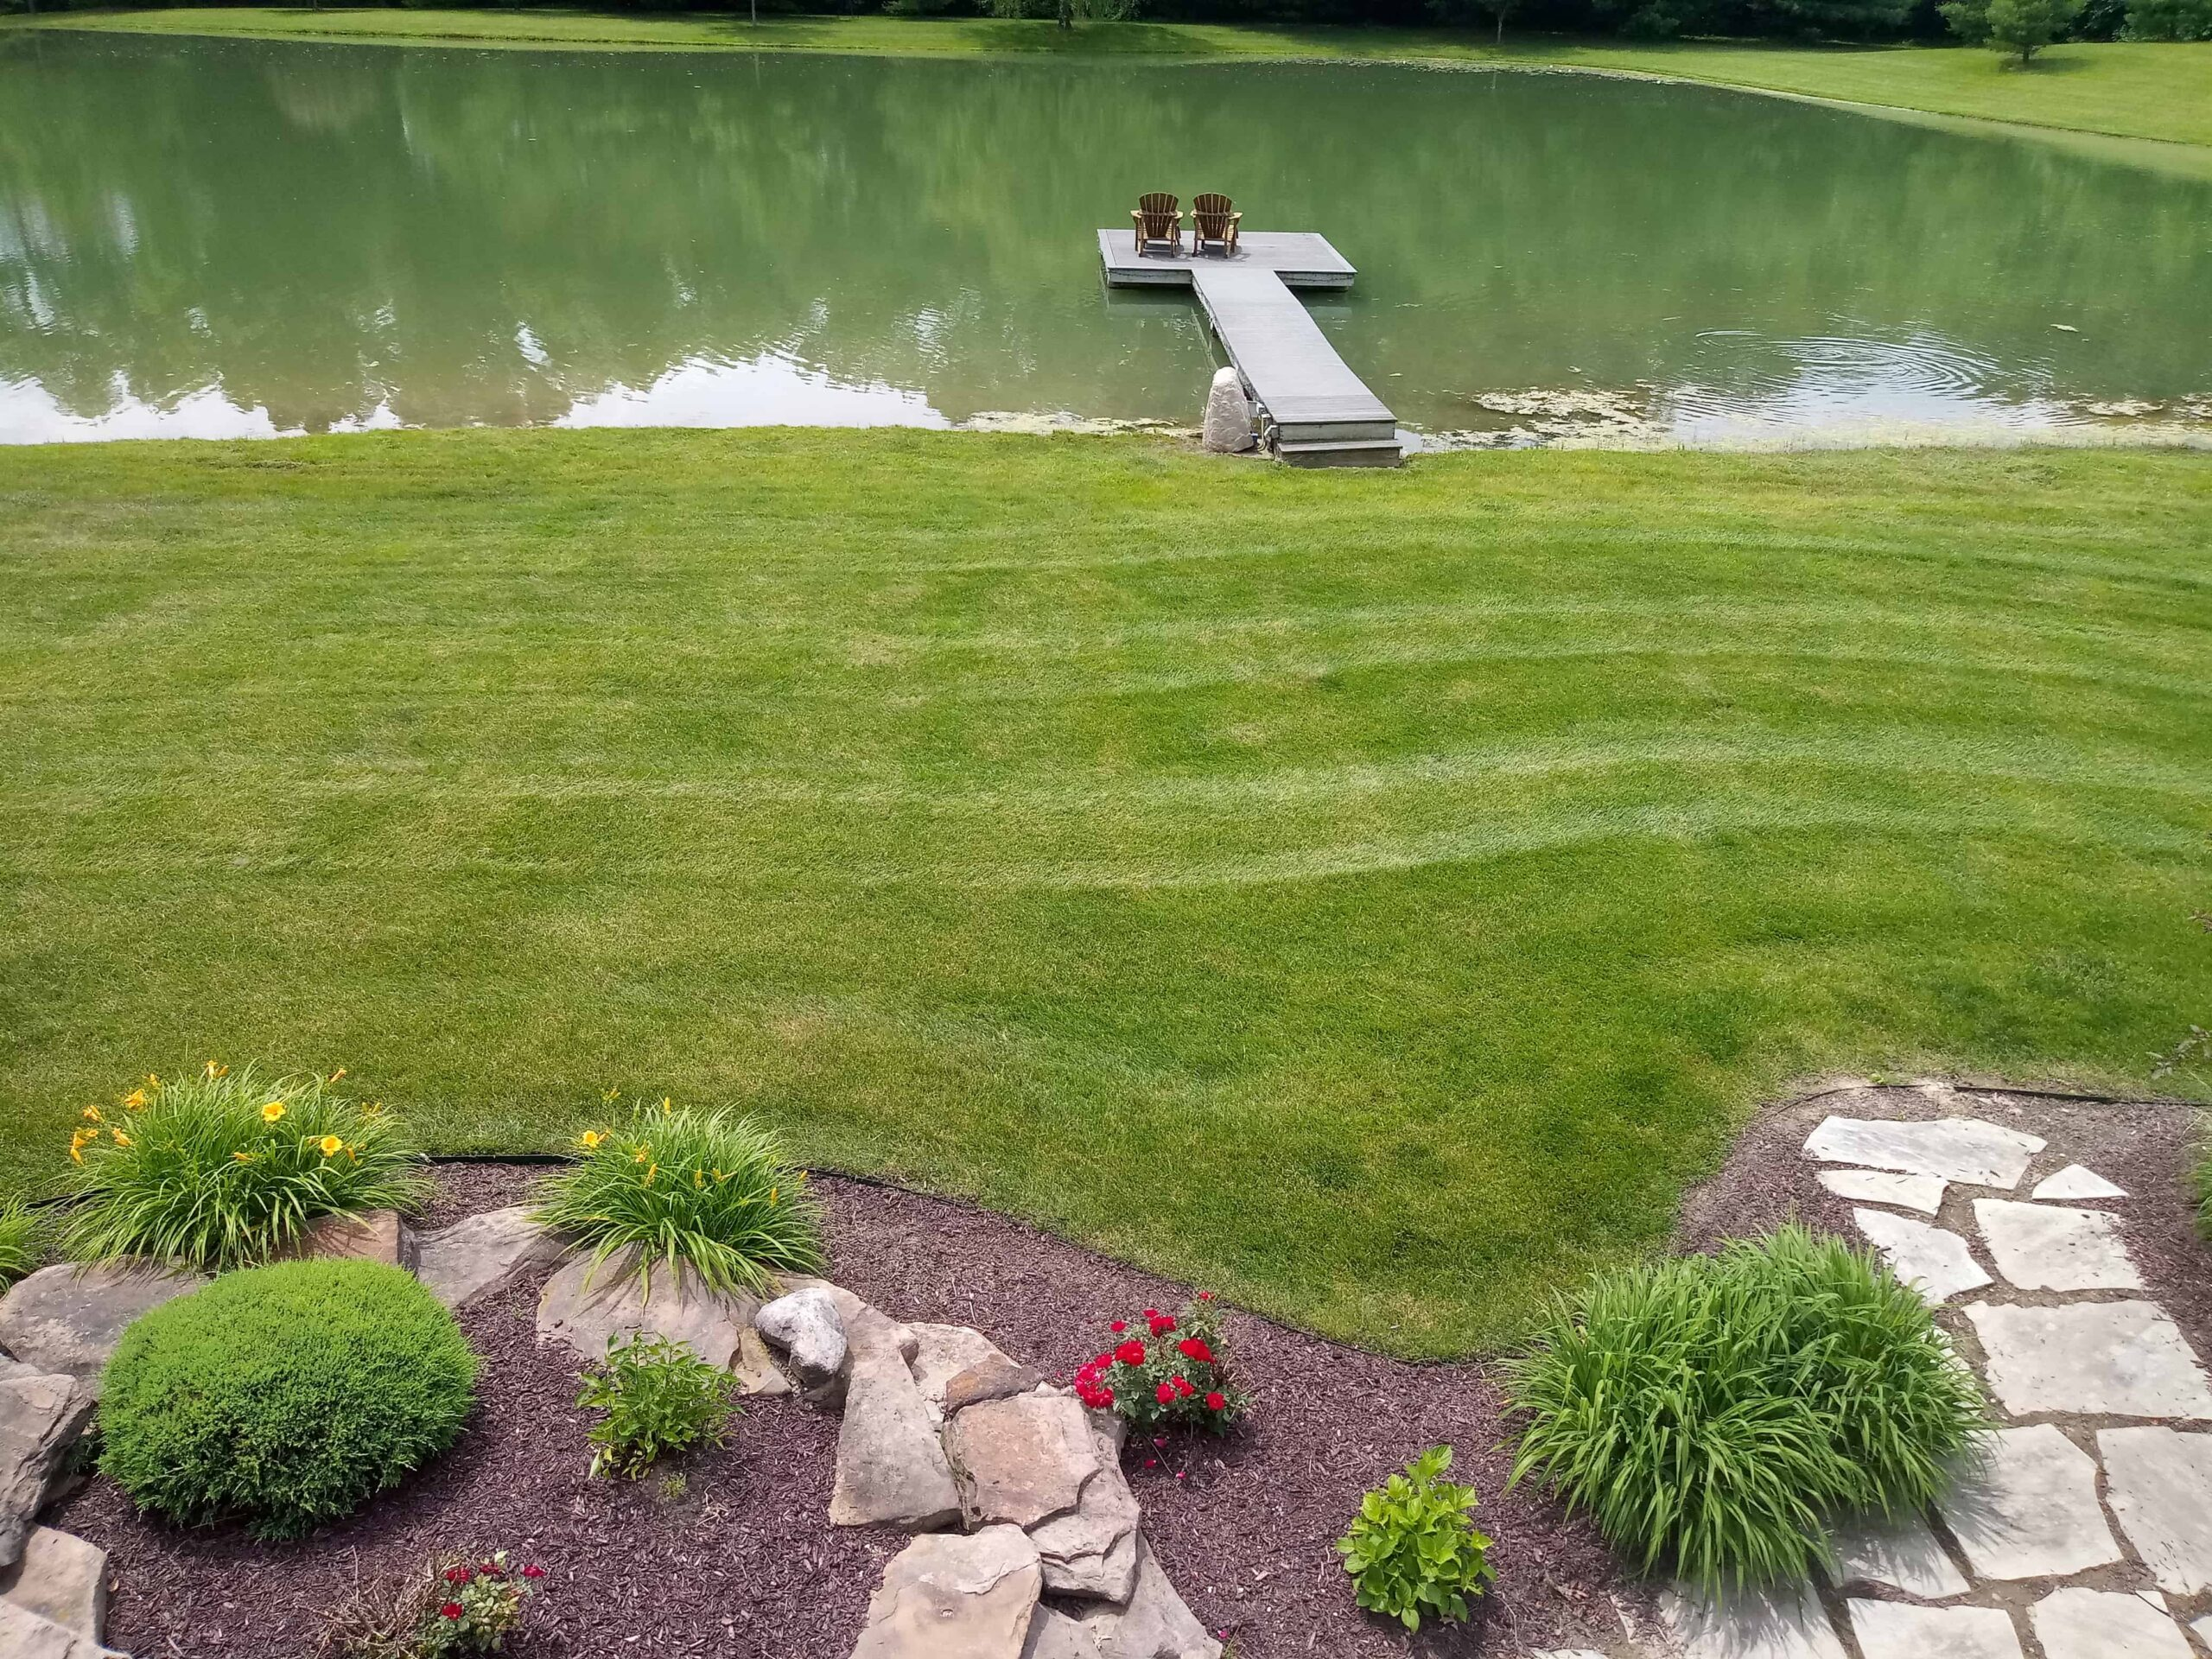 Landscaping Hardscaping, and Mowing Services, Greater Fort Wayne Area